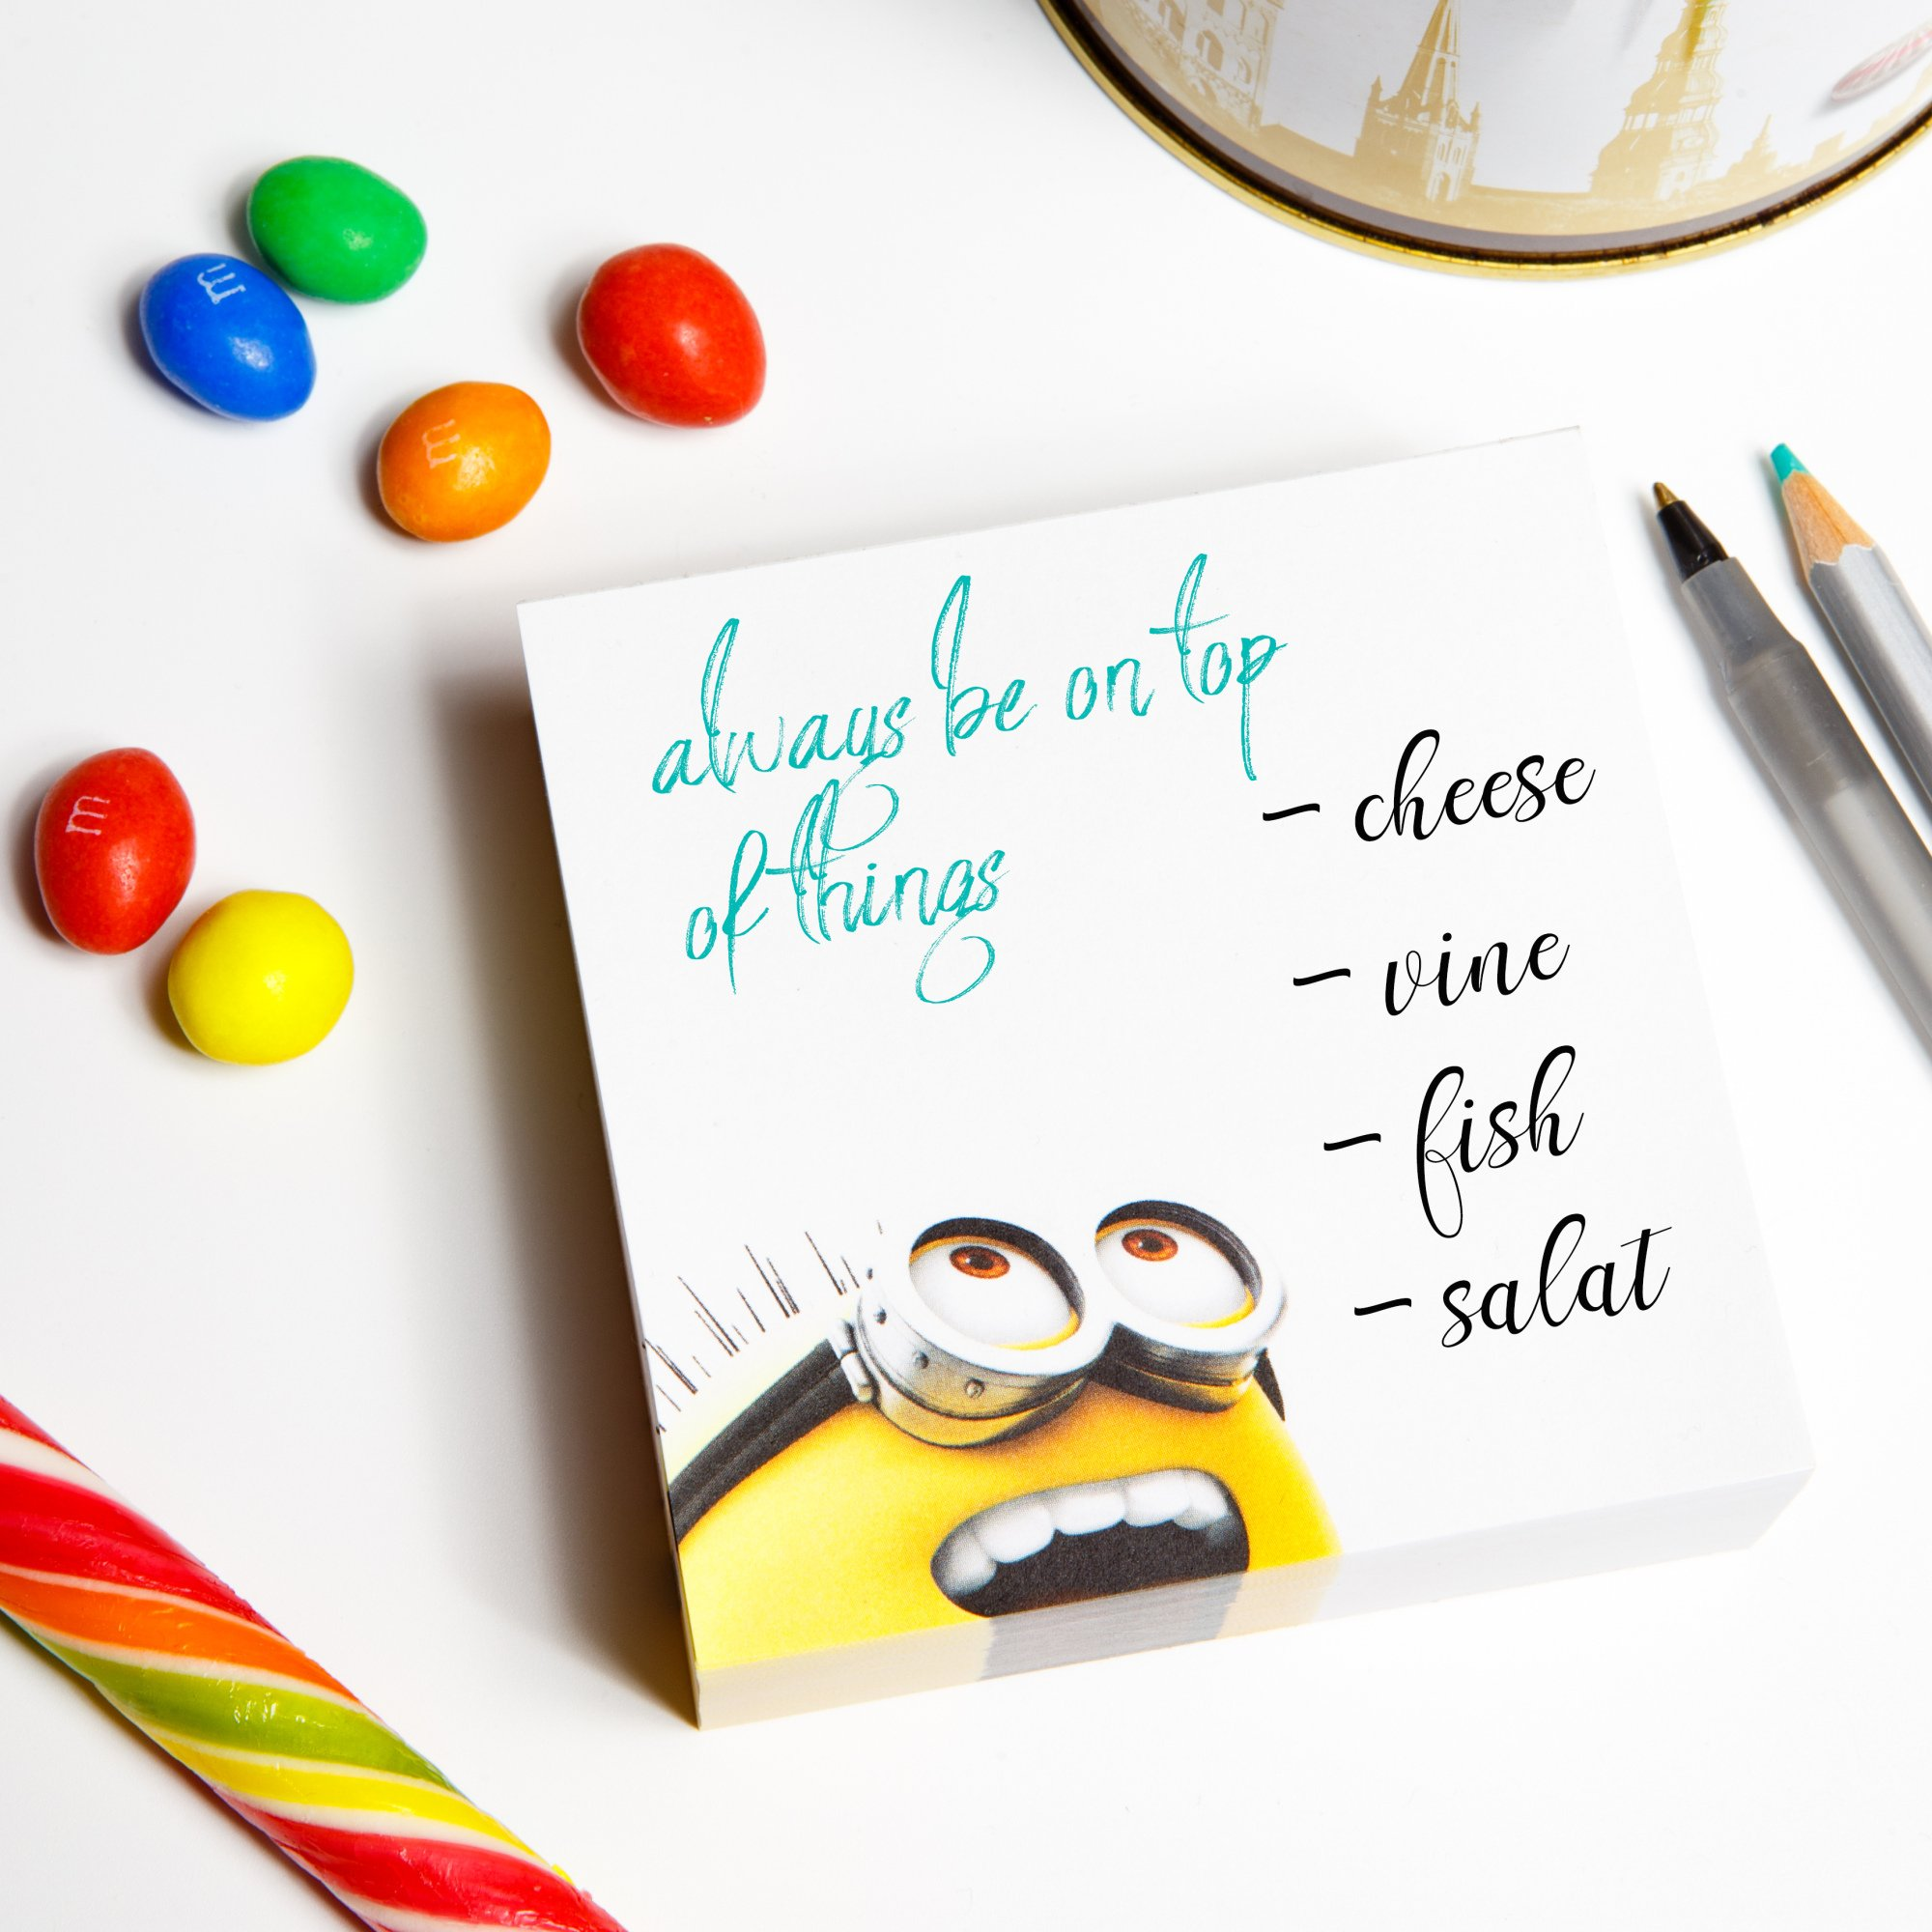 Minions - Despicable Me - Memo Note Paper Pad 3.5 x 3.5 inches (90 x 90 mm) - Paper Cube - Great for Writing Notes, Messages, Reminders - 300 white tear-off pages NOT STICKY- Must Have on Every Desk